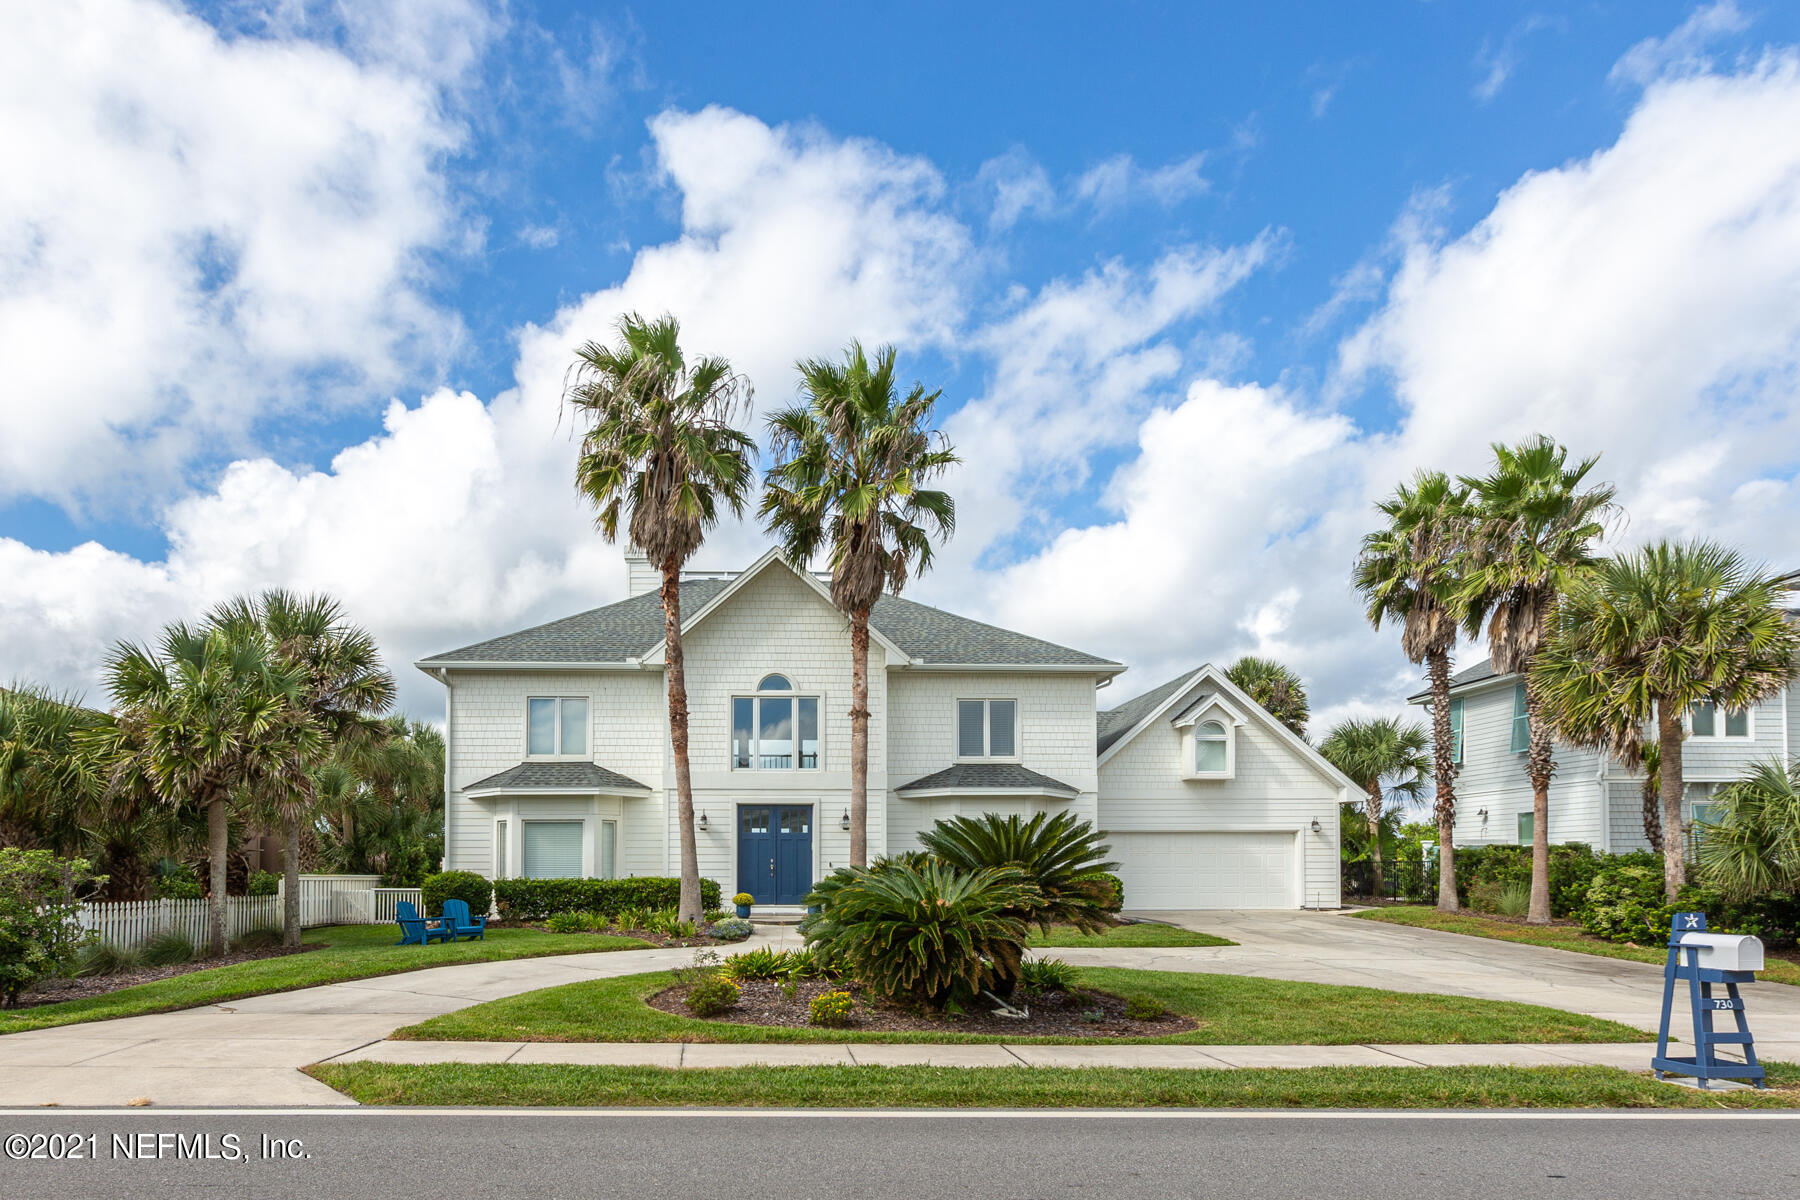 Enjoy your best life on the sands of Ponte Vedra Beach. Just steps away from this fine property you will find beach access that will provide quick access to all your family beach time and long romantic sunset strolls! On top of that you are walking distance to the Lodge & Club. Enjoy both the the most mesmerizing sunrises as well as the most romantic sunsets from the rooftop balcony/observation deck that provides the best of ocean and guana views. The kitchen features GE Monogram appliances. There is a first floor guest suite combined as well as a spacious 2nd floor master with balcony overlooking the guana. A recently upgraded electrical system as well as updated HVAC system compliments the hardiboard exterior that was completed in 2015. Welcome to the best that Northeast FL has to offer!